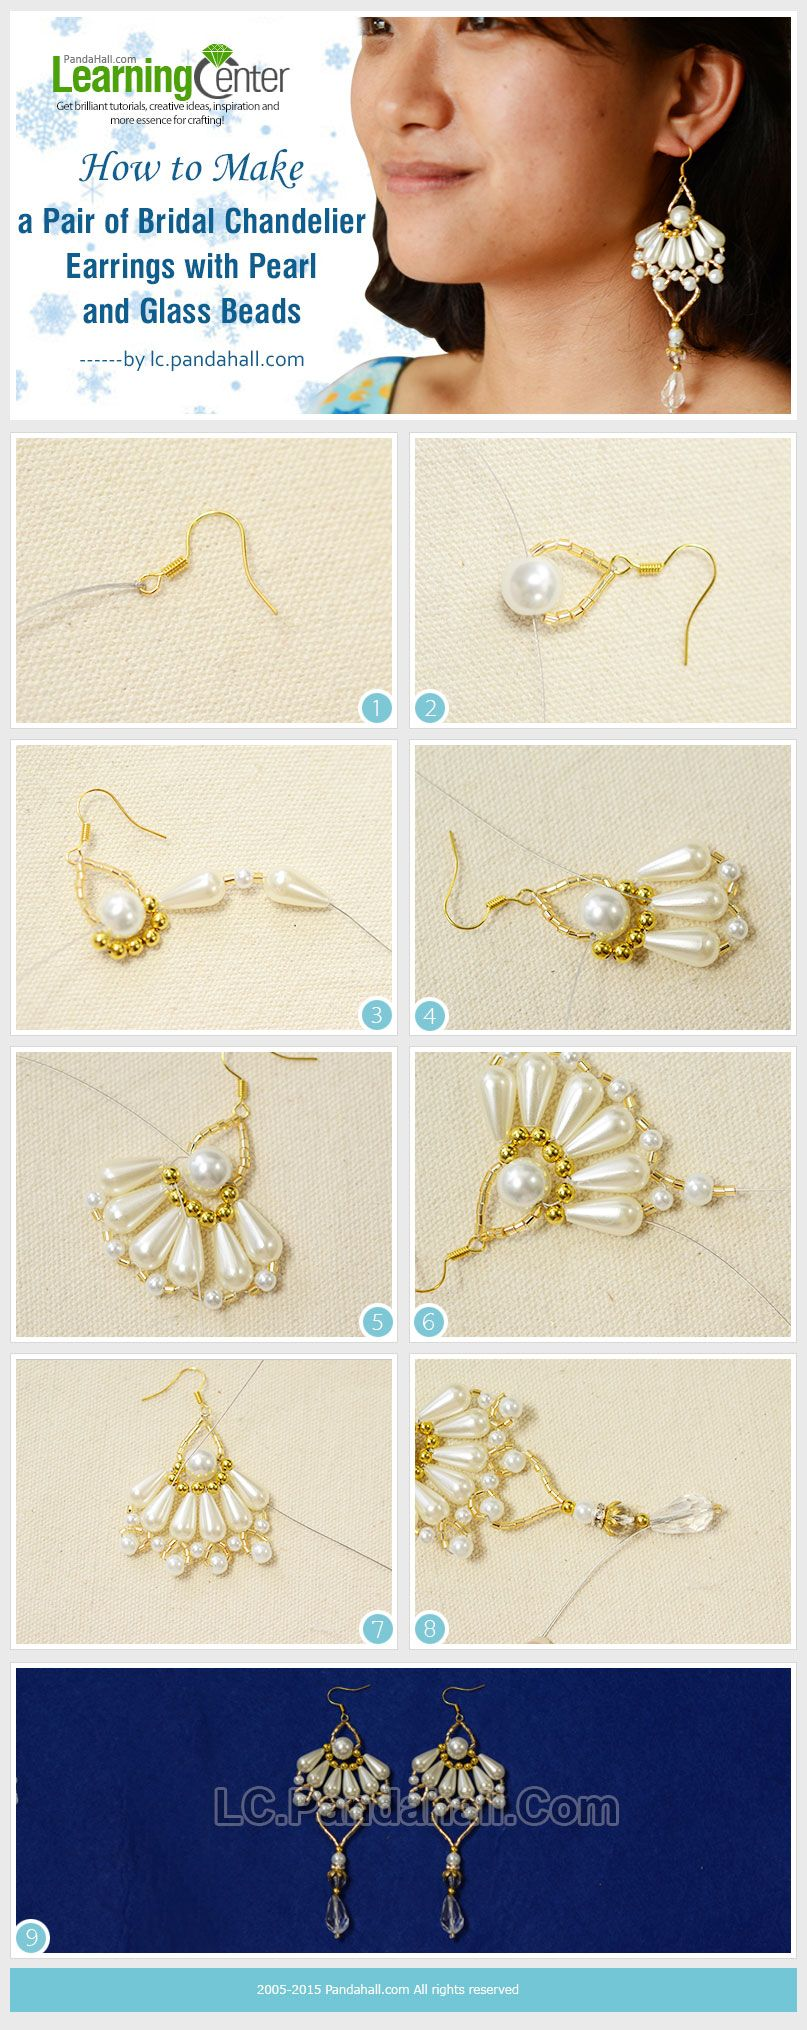 How to make a pair of bridal chandelier earrings with pearl and how to make a pair of bridal chandelier earrings with pearl and glass beads arubaitofo Image collections